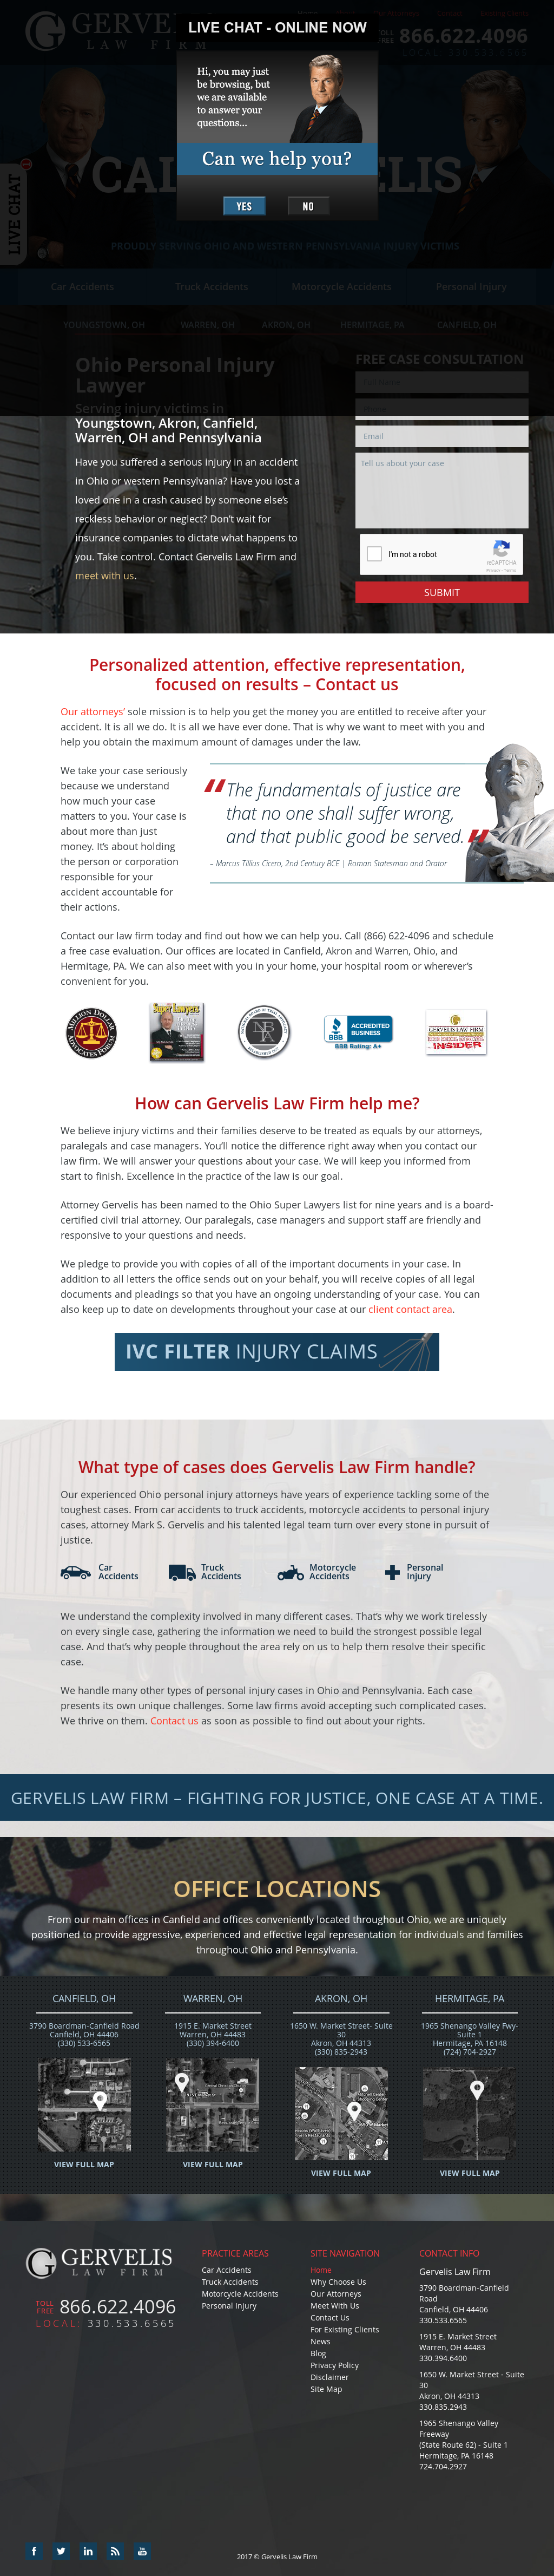 Gervelis Law Firm petitors Revenue and Employees Owler pany